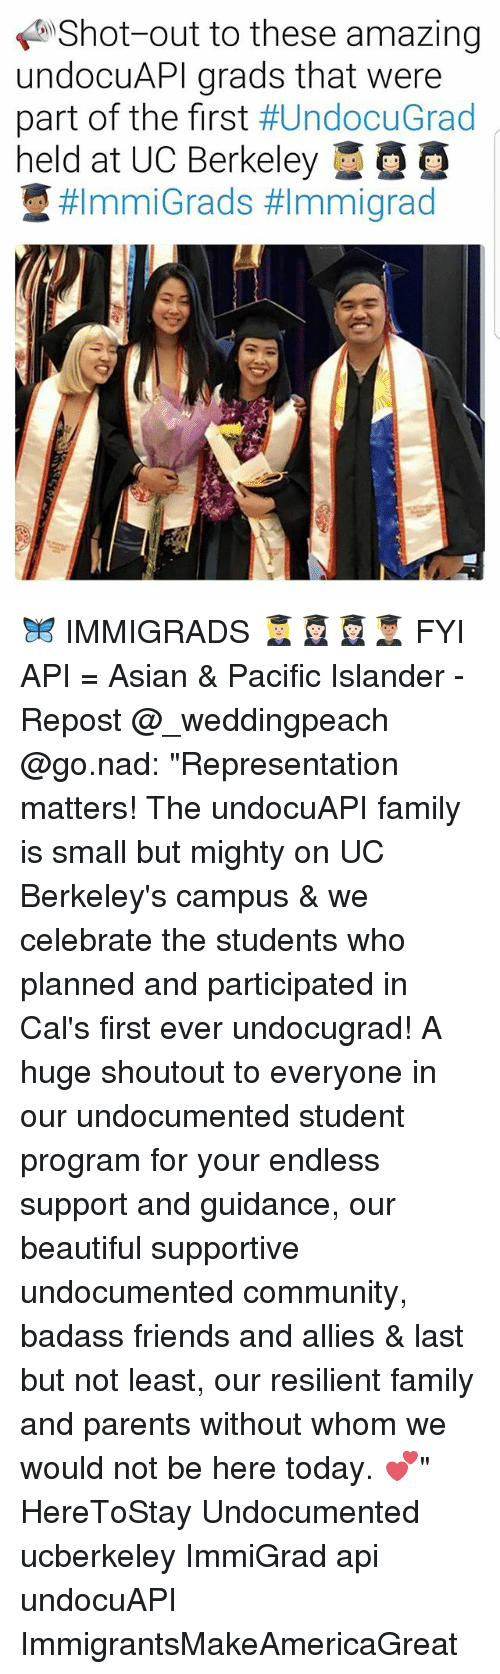 "Asian, Beautiful, and Community: Shot out to these amazing  undocuAPI grads that were  part of the first  HUndocuGrad  held at UC Berkeley  #Immi Grads 🦋 IMMIGRADS 👩🏼‍🎓👩🏻‍🎓👩🏻‍🎓👨🏽‍🎓 FYI API = Asian & Pacific Islander - Repost @_weddingpeach @go.nad: ""Representation matters! The undocuAPI family is small but mighty on UC Berkeley's campus & we celebrate the students who planned and participated in Cal's first ever undocugrad! A huge shoutout to everyone in our undocumented student program for your endless support and guidance, our beautiful supportive undocumented community, badass friends and allies & last but not least, our resilient family and parents without whom we would not be here today. 💕"" HereToStay Undocumented ucberkeley ImmiGrad api undocuAPI ImmigrantsMakeAmericaGreat"